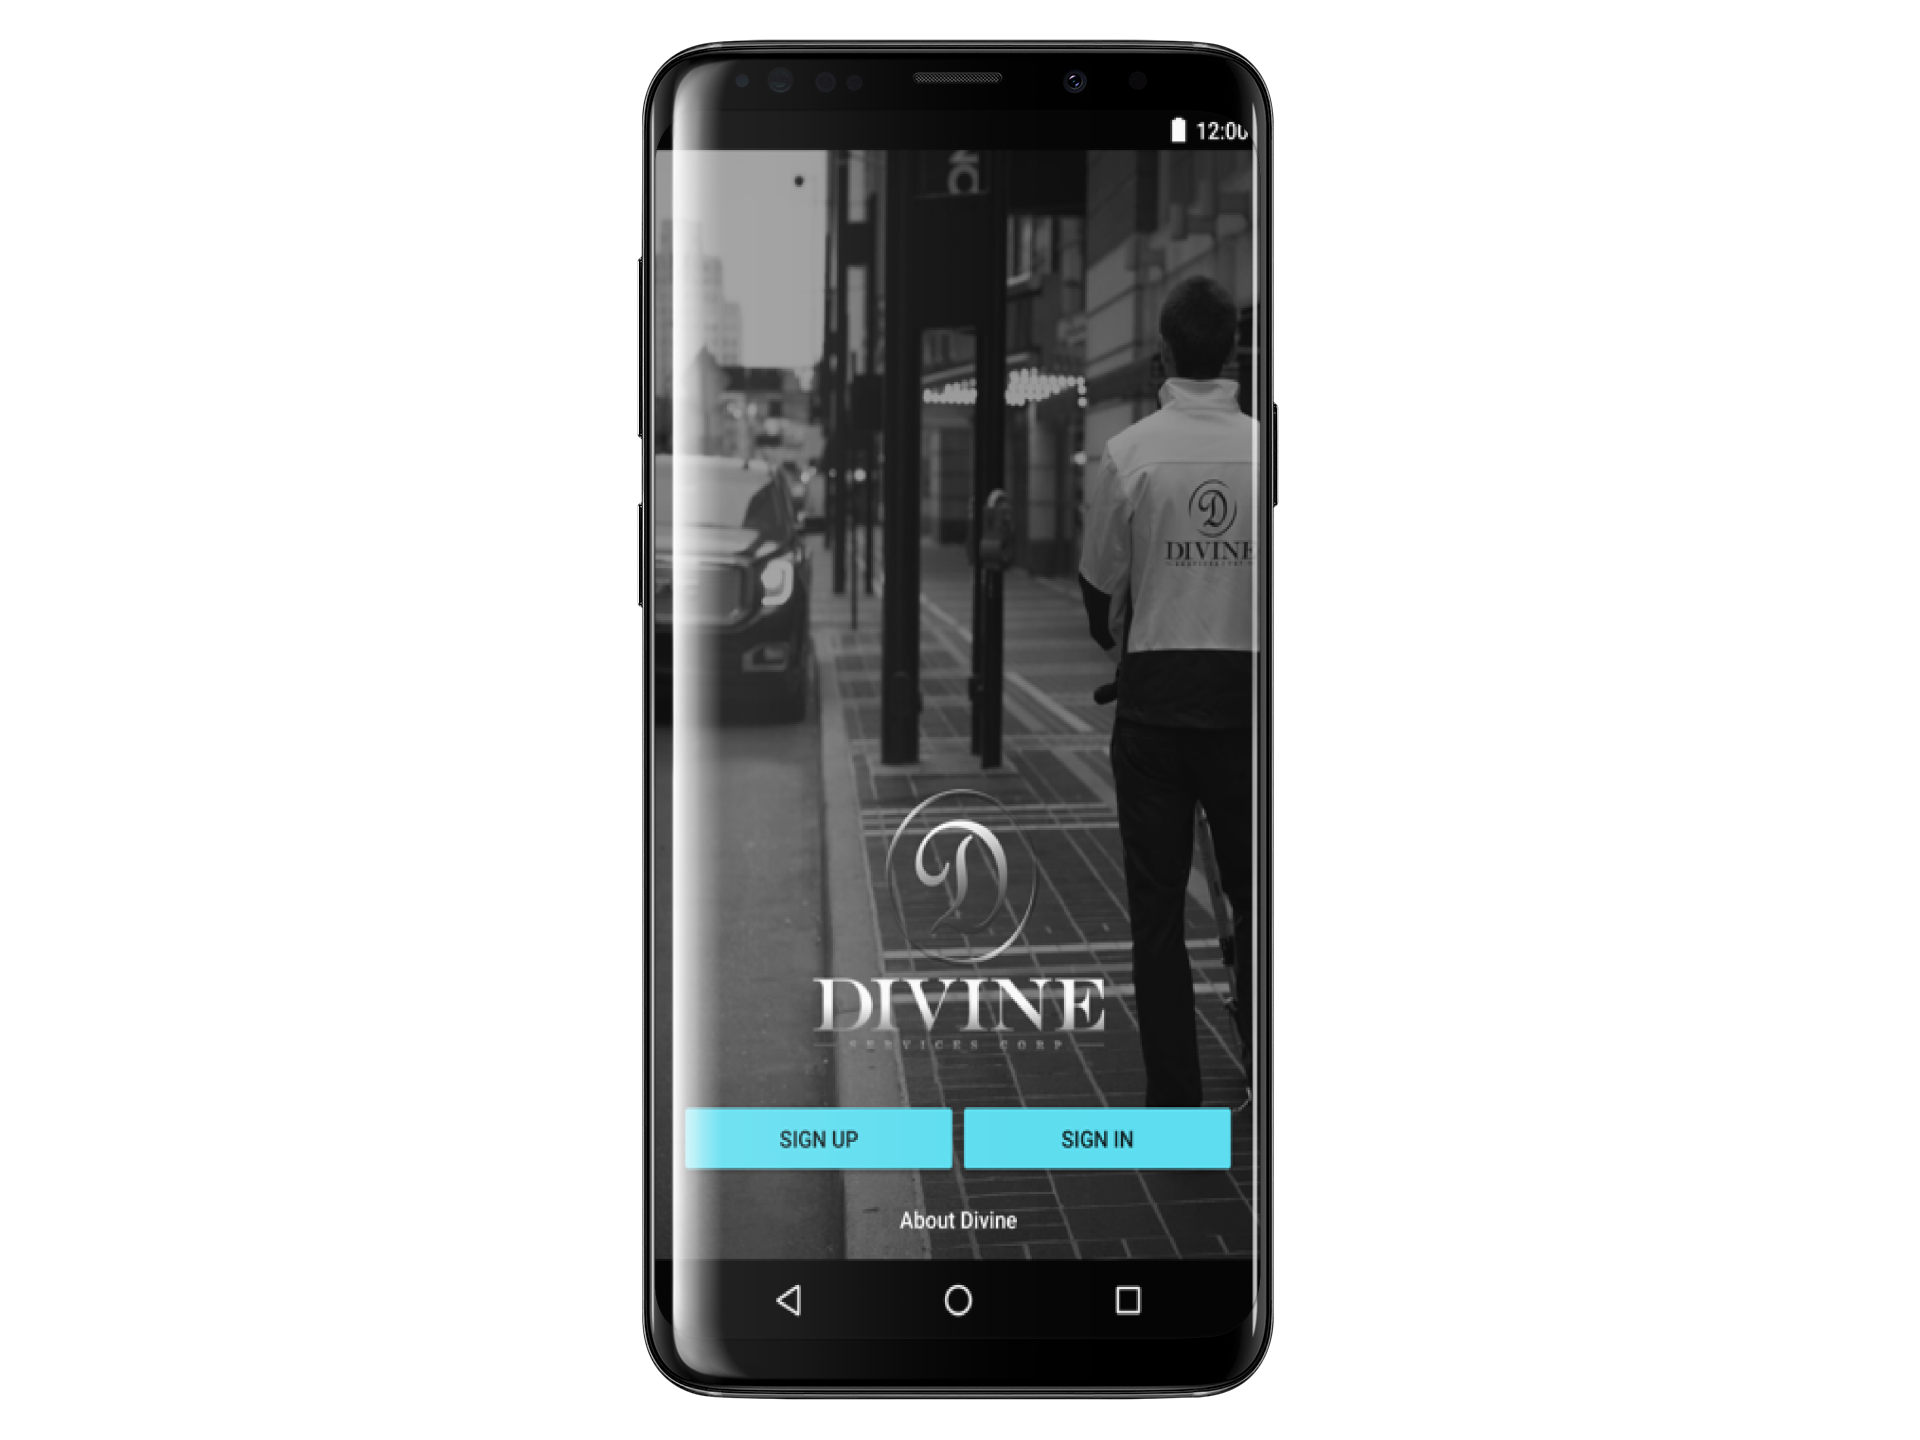 Download our App… Spend less time parking. - Big city dreams with less parking nightmares. Divine offers on-demand valet parking straight from your Apple or Android device, so you don't have to worry about a thing.GET THE APP ➝